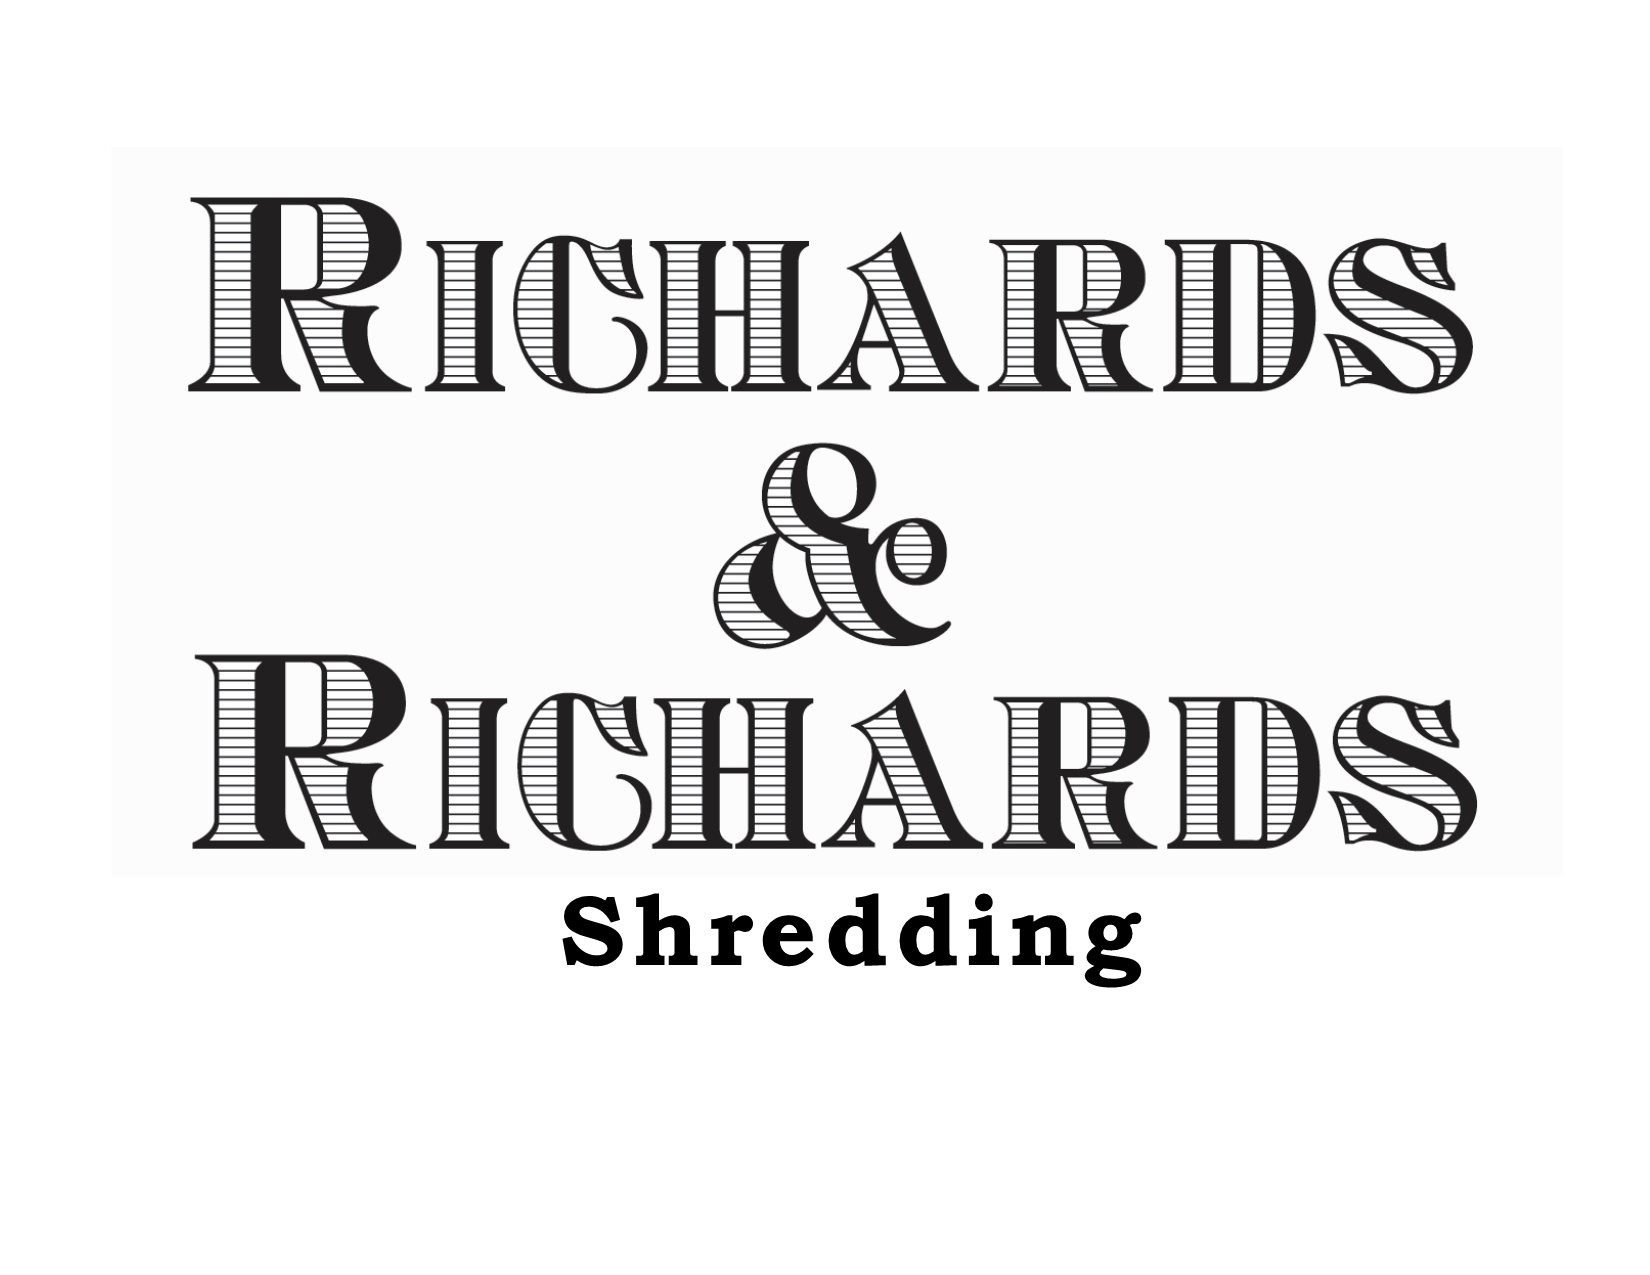 richards and richards